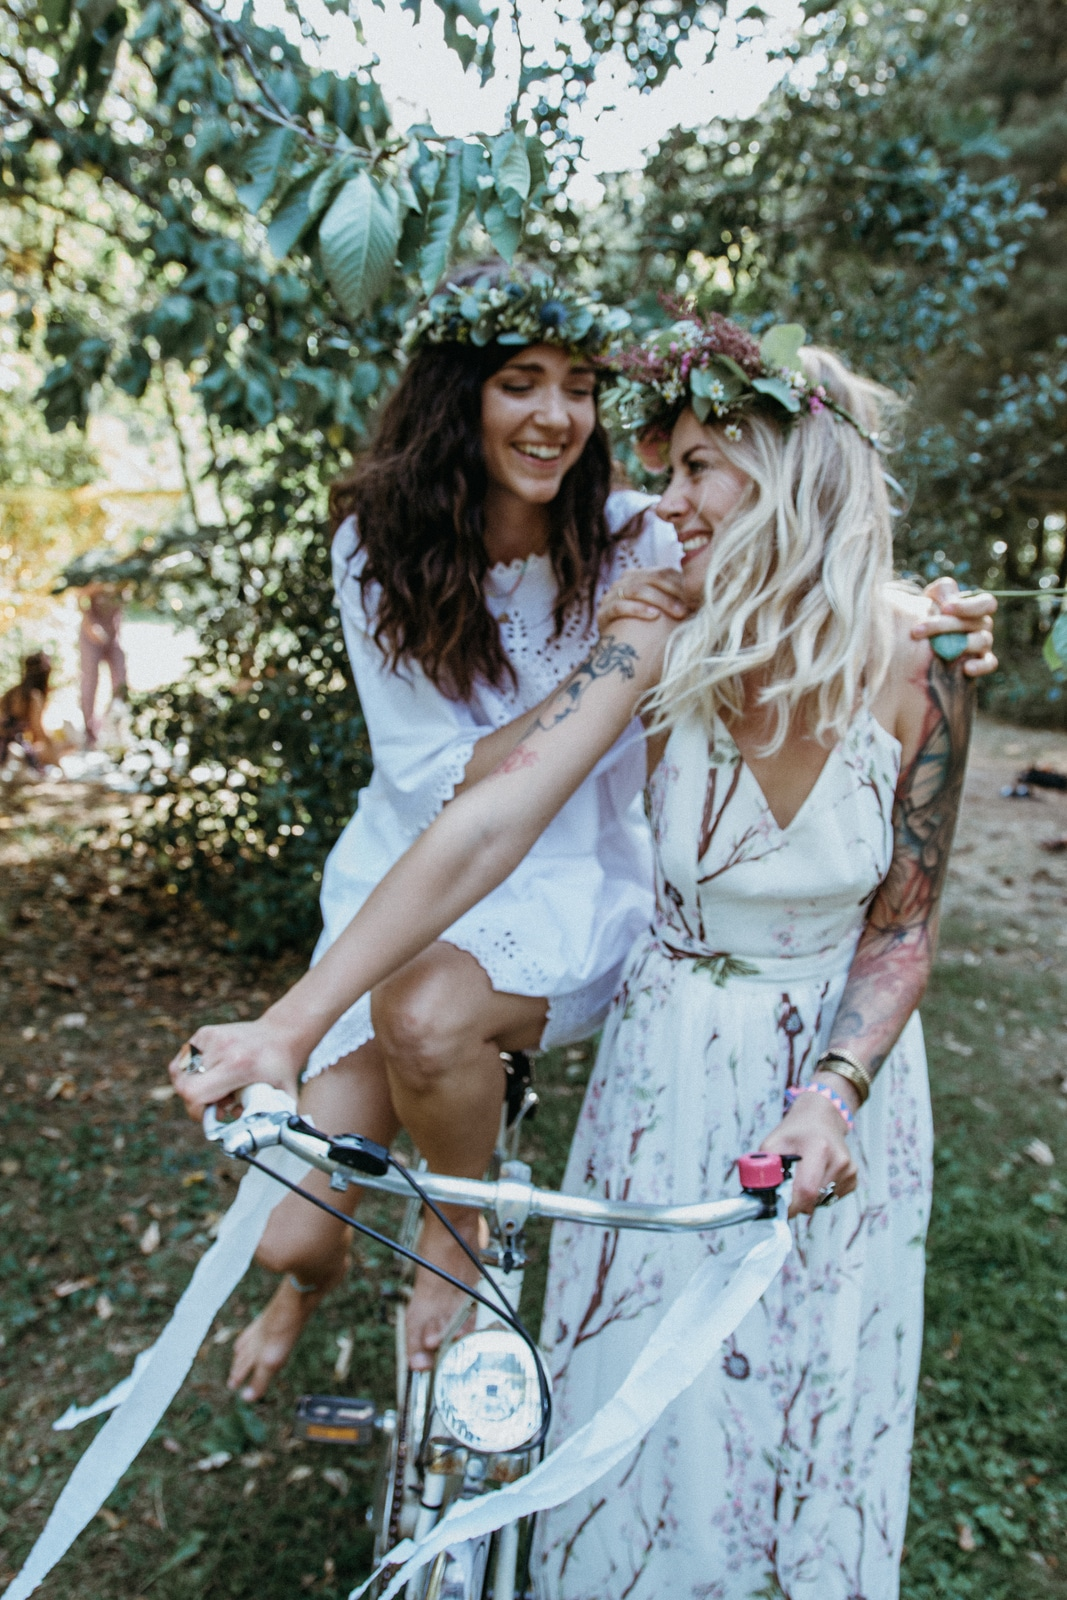 bridal shower Junggesellinnenabschied Coachella Style JGA Deluxe Boho Picknick Folklore wedding Inspiration Bacheloretteparty im Grünen Flowercrown bike outdoor event